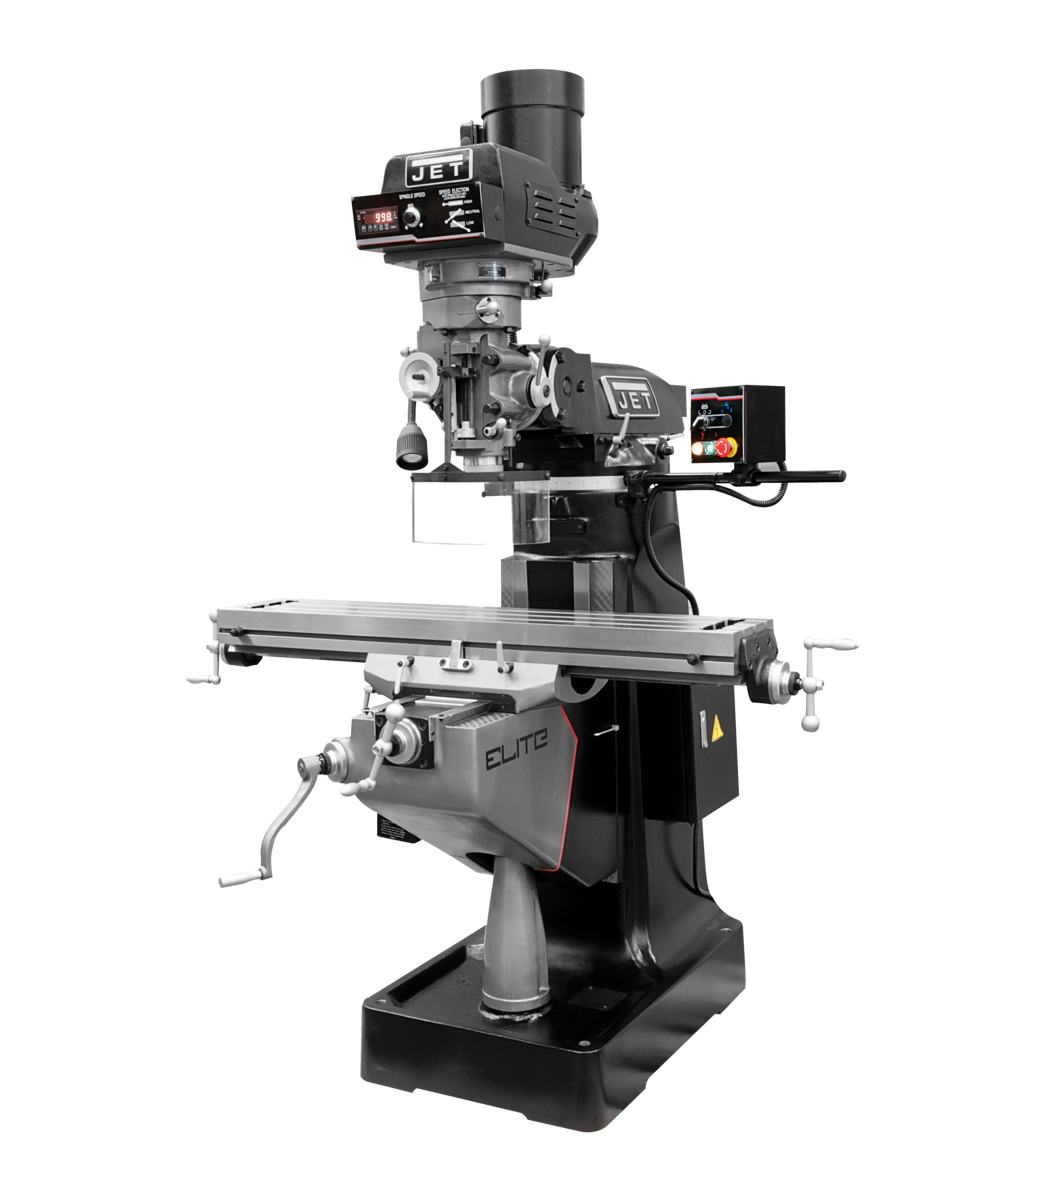 EVS-949 Mill with 3-Axis Newall DP700 (Knee) DRO and Servo X, Y, Z-Axis Powerfeeds and USA Air Powered Draw Bar